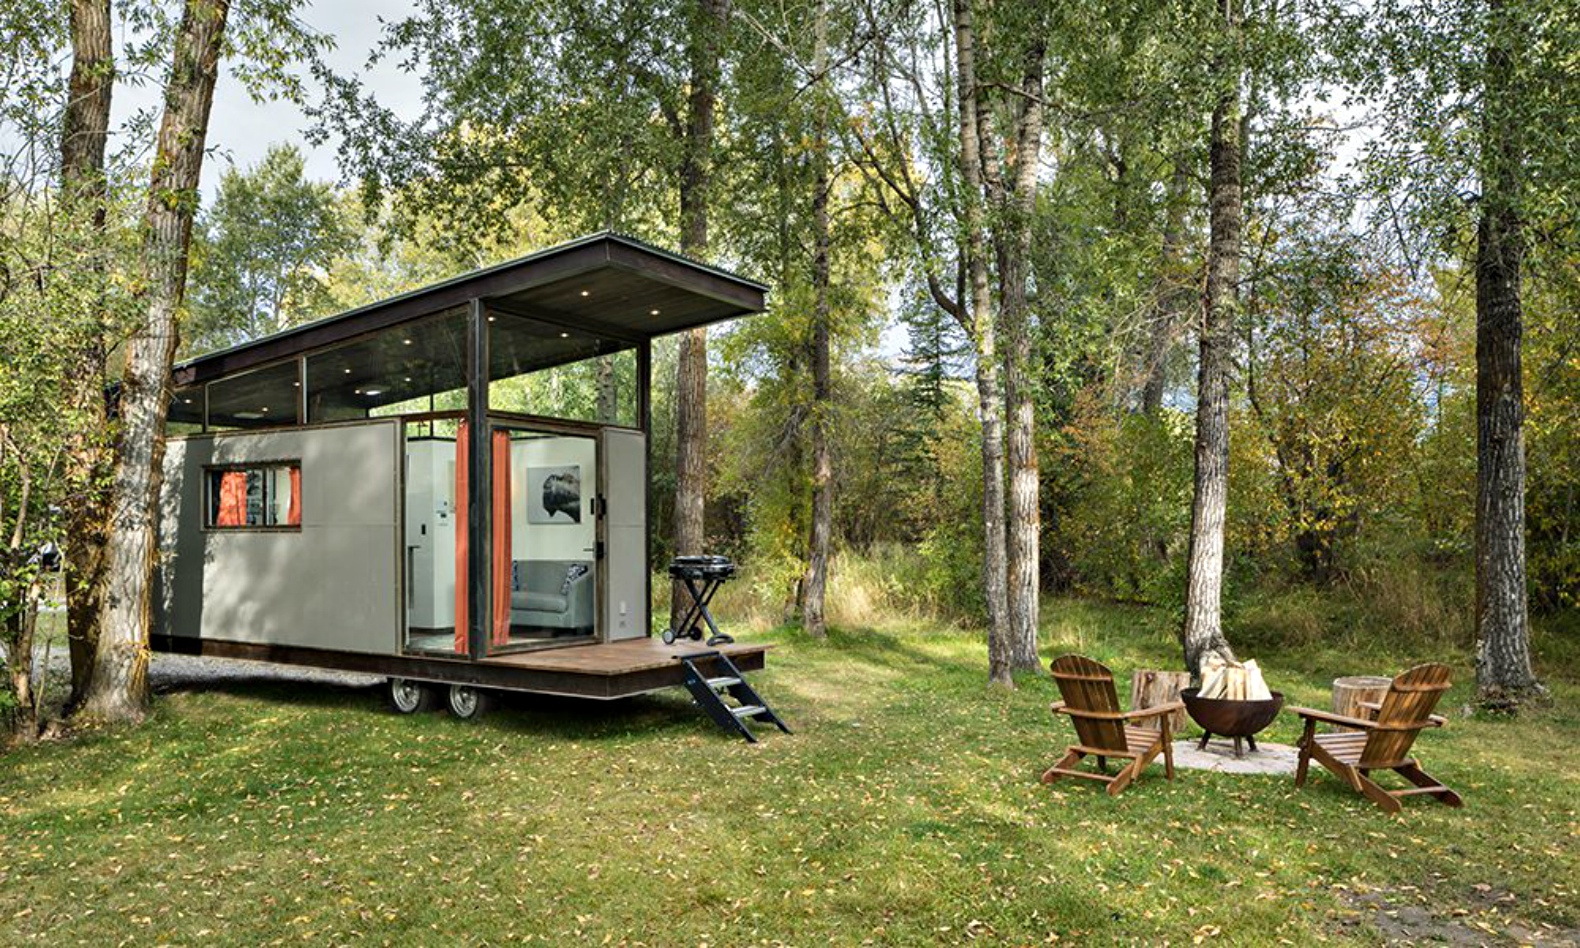 Bon Wheelhaus, Roadhouse, Tiny House RV Hybrids, Tiny House Living, Off Grid